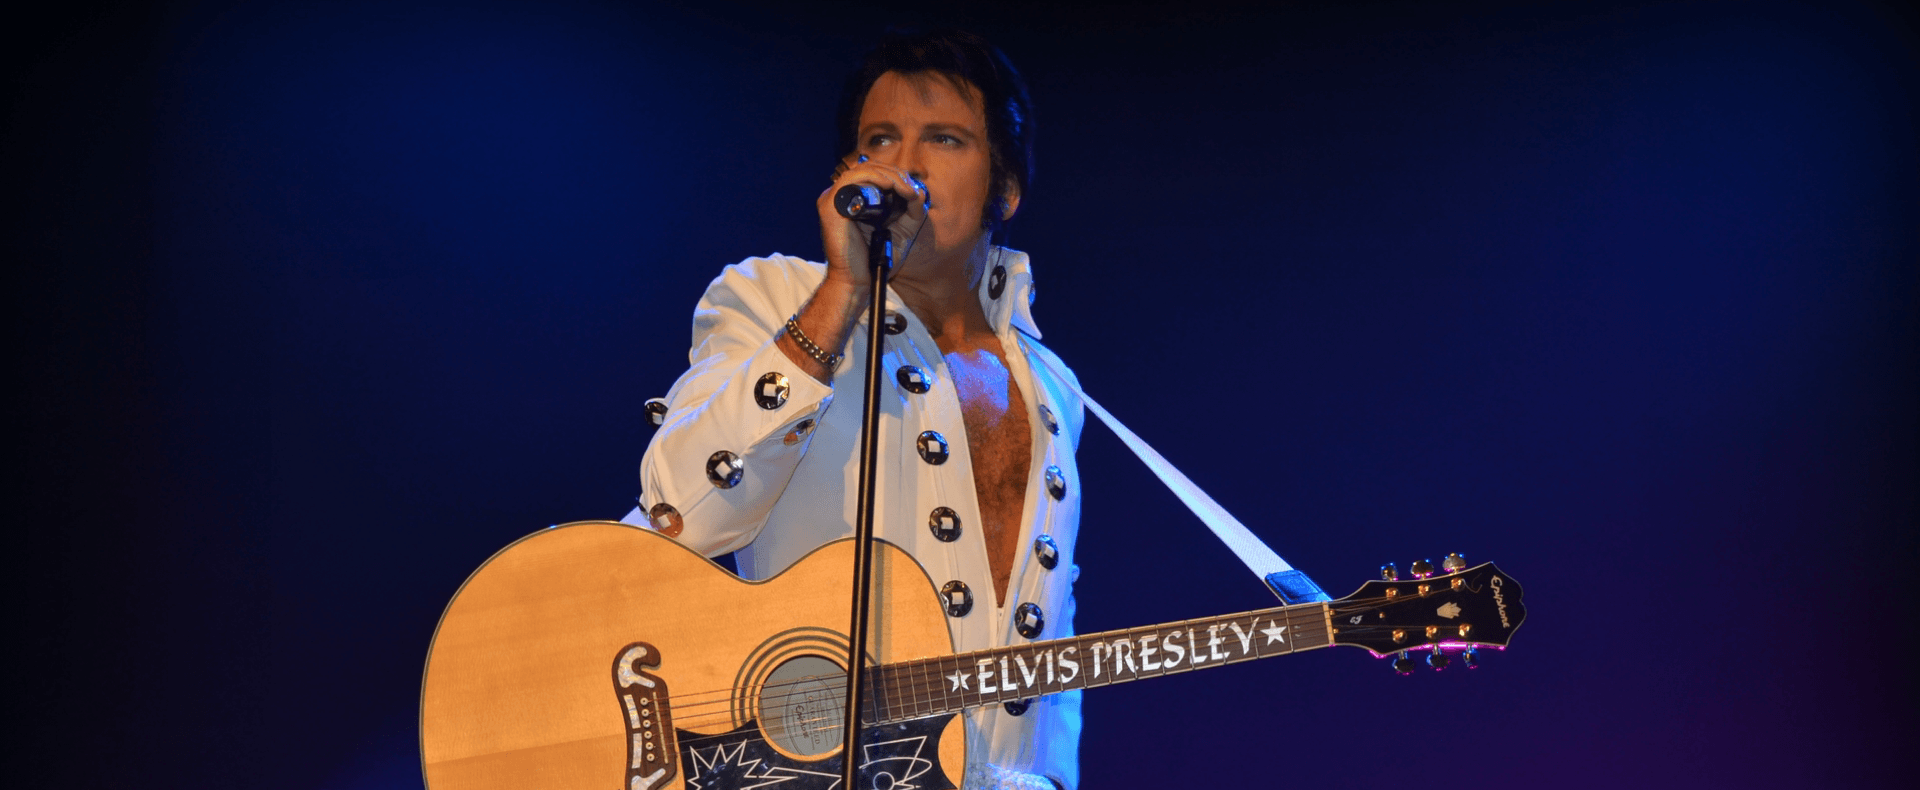 Elvis Forever – Damian Mullin Up Close & Personal